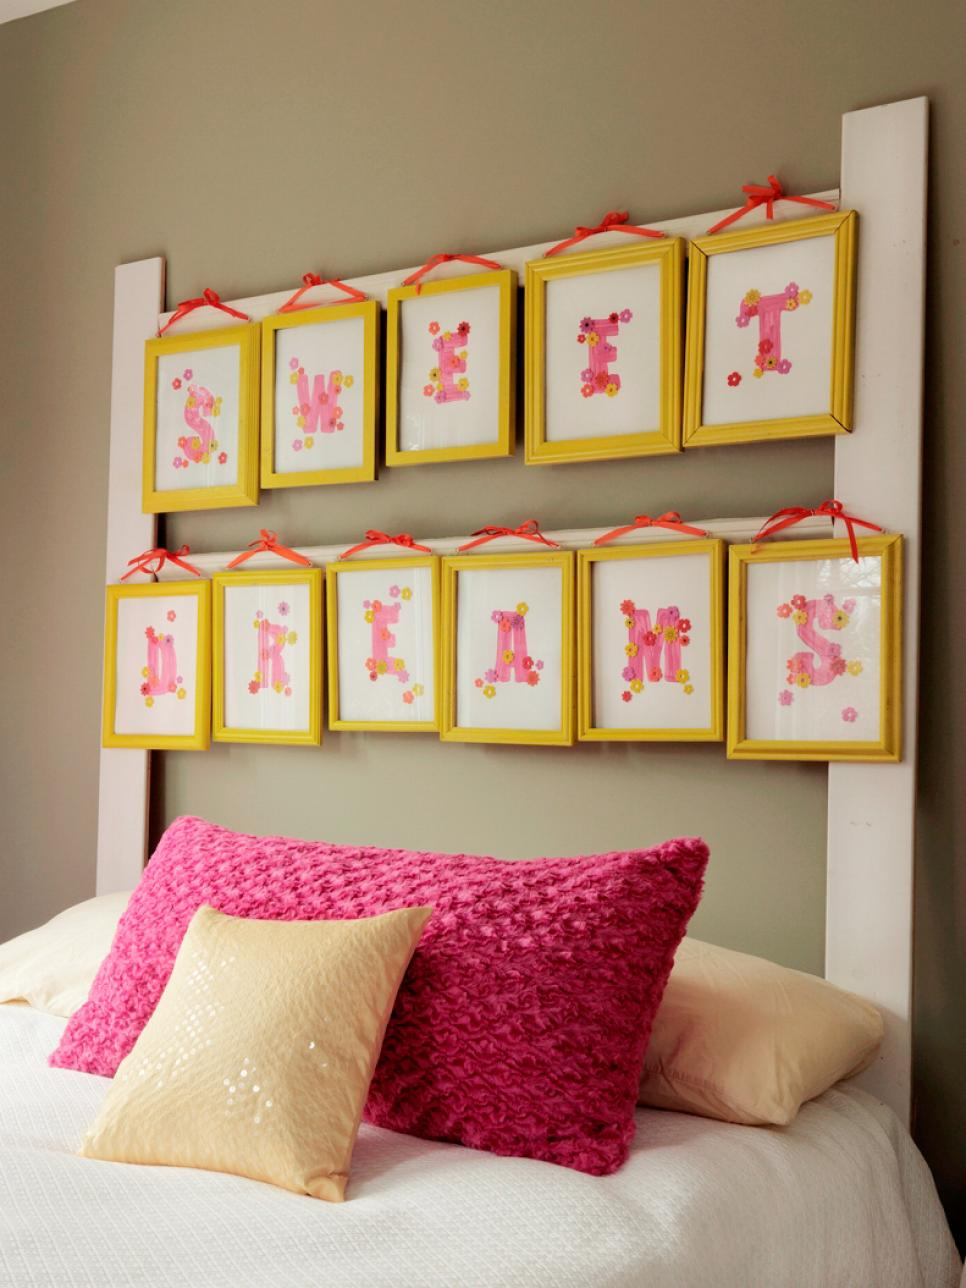 15 easy diy headboards diy - Home Decor Diy